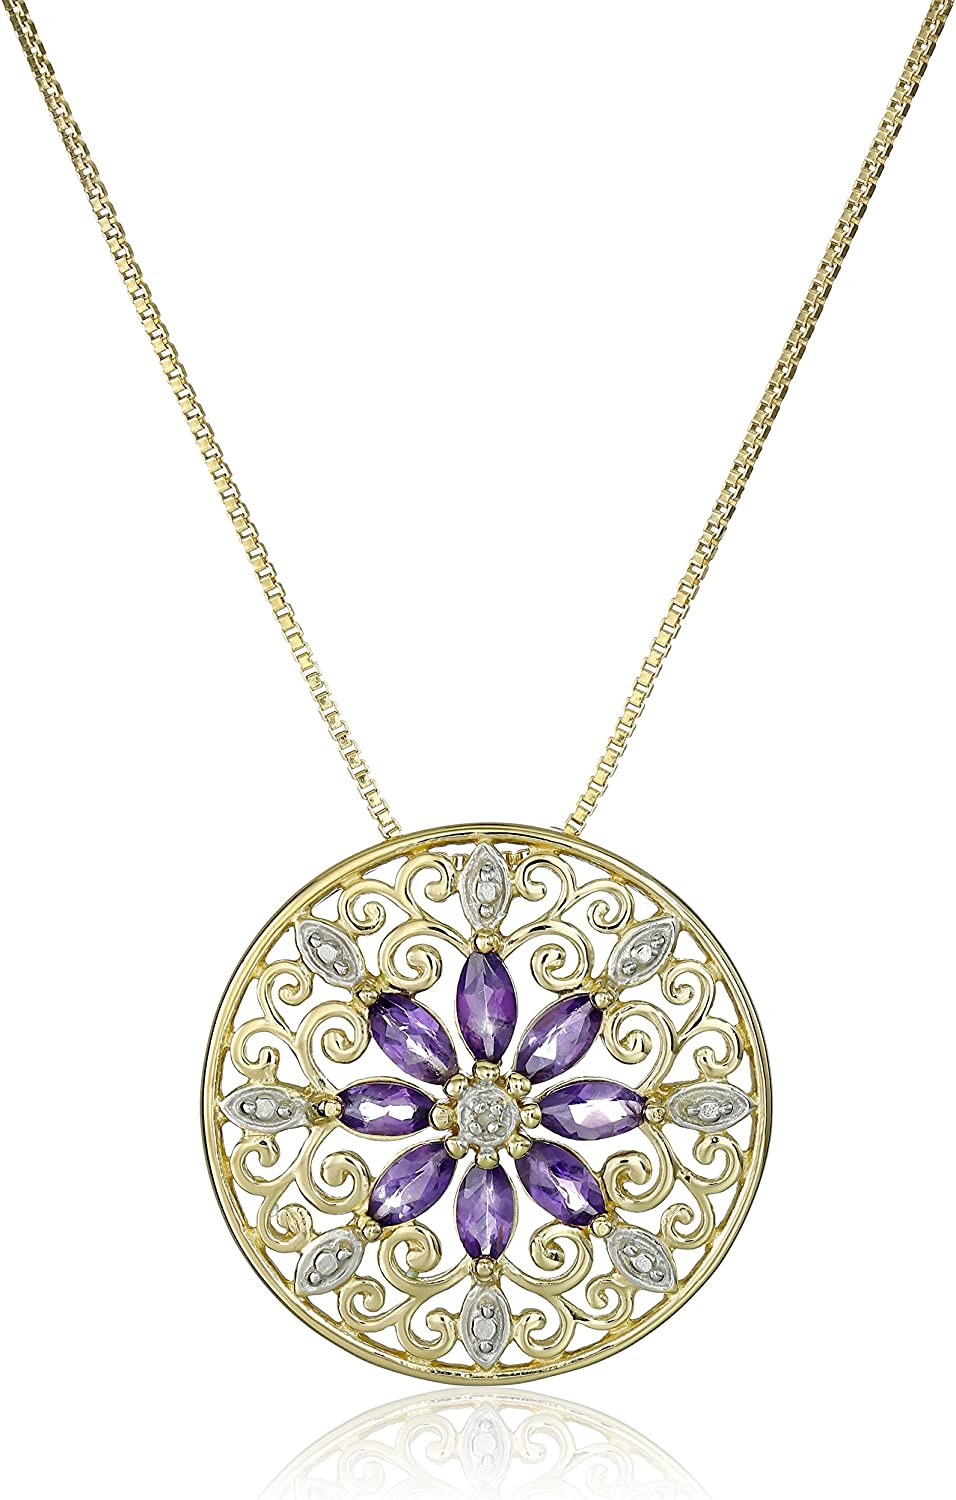 Solid Sterling Silver Rose Flower Pendant Necklace 1 inch Length with Three Gemstone Centerpieces